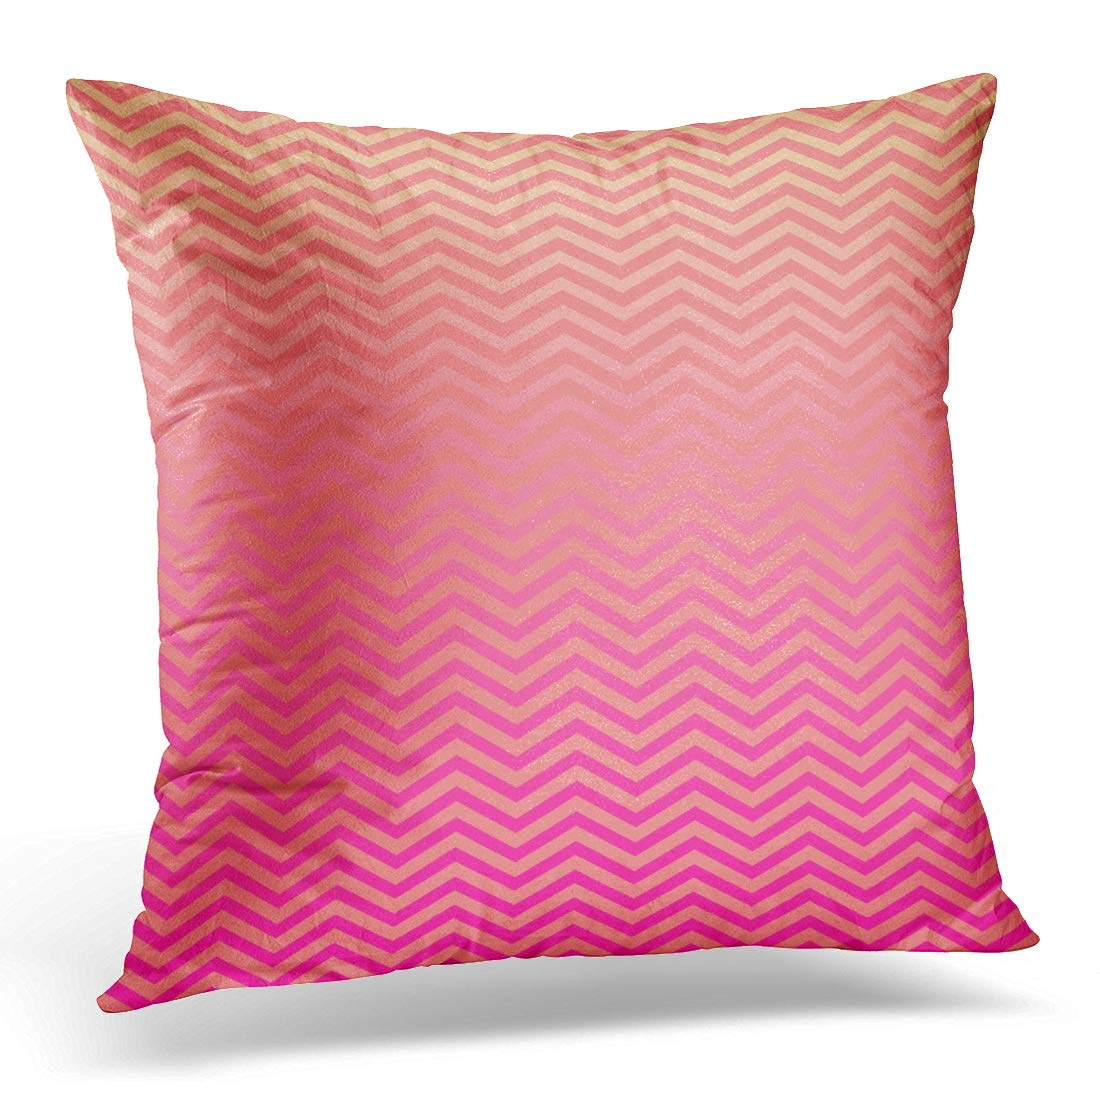 Amazon Com Emvency Throw Pillow Covers Case Pink Peach Ombre